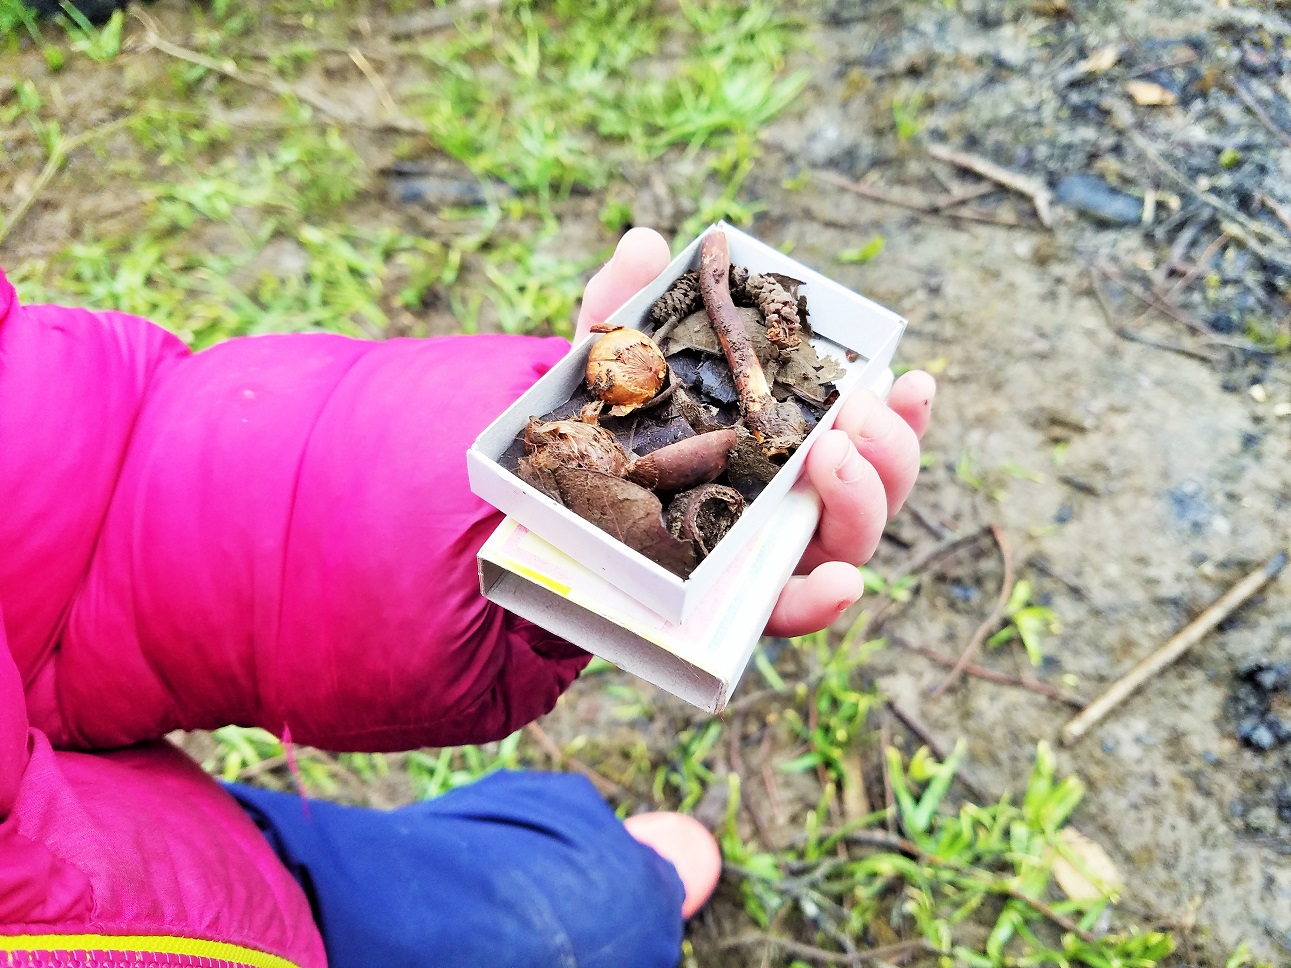 Forest school in the Yorkshire Dales - child holding matchbox of outdoor treasures